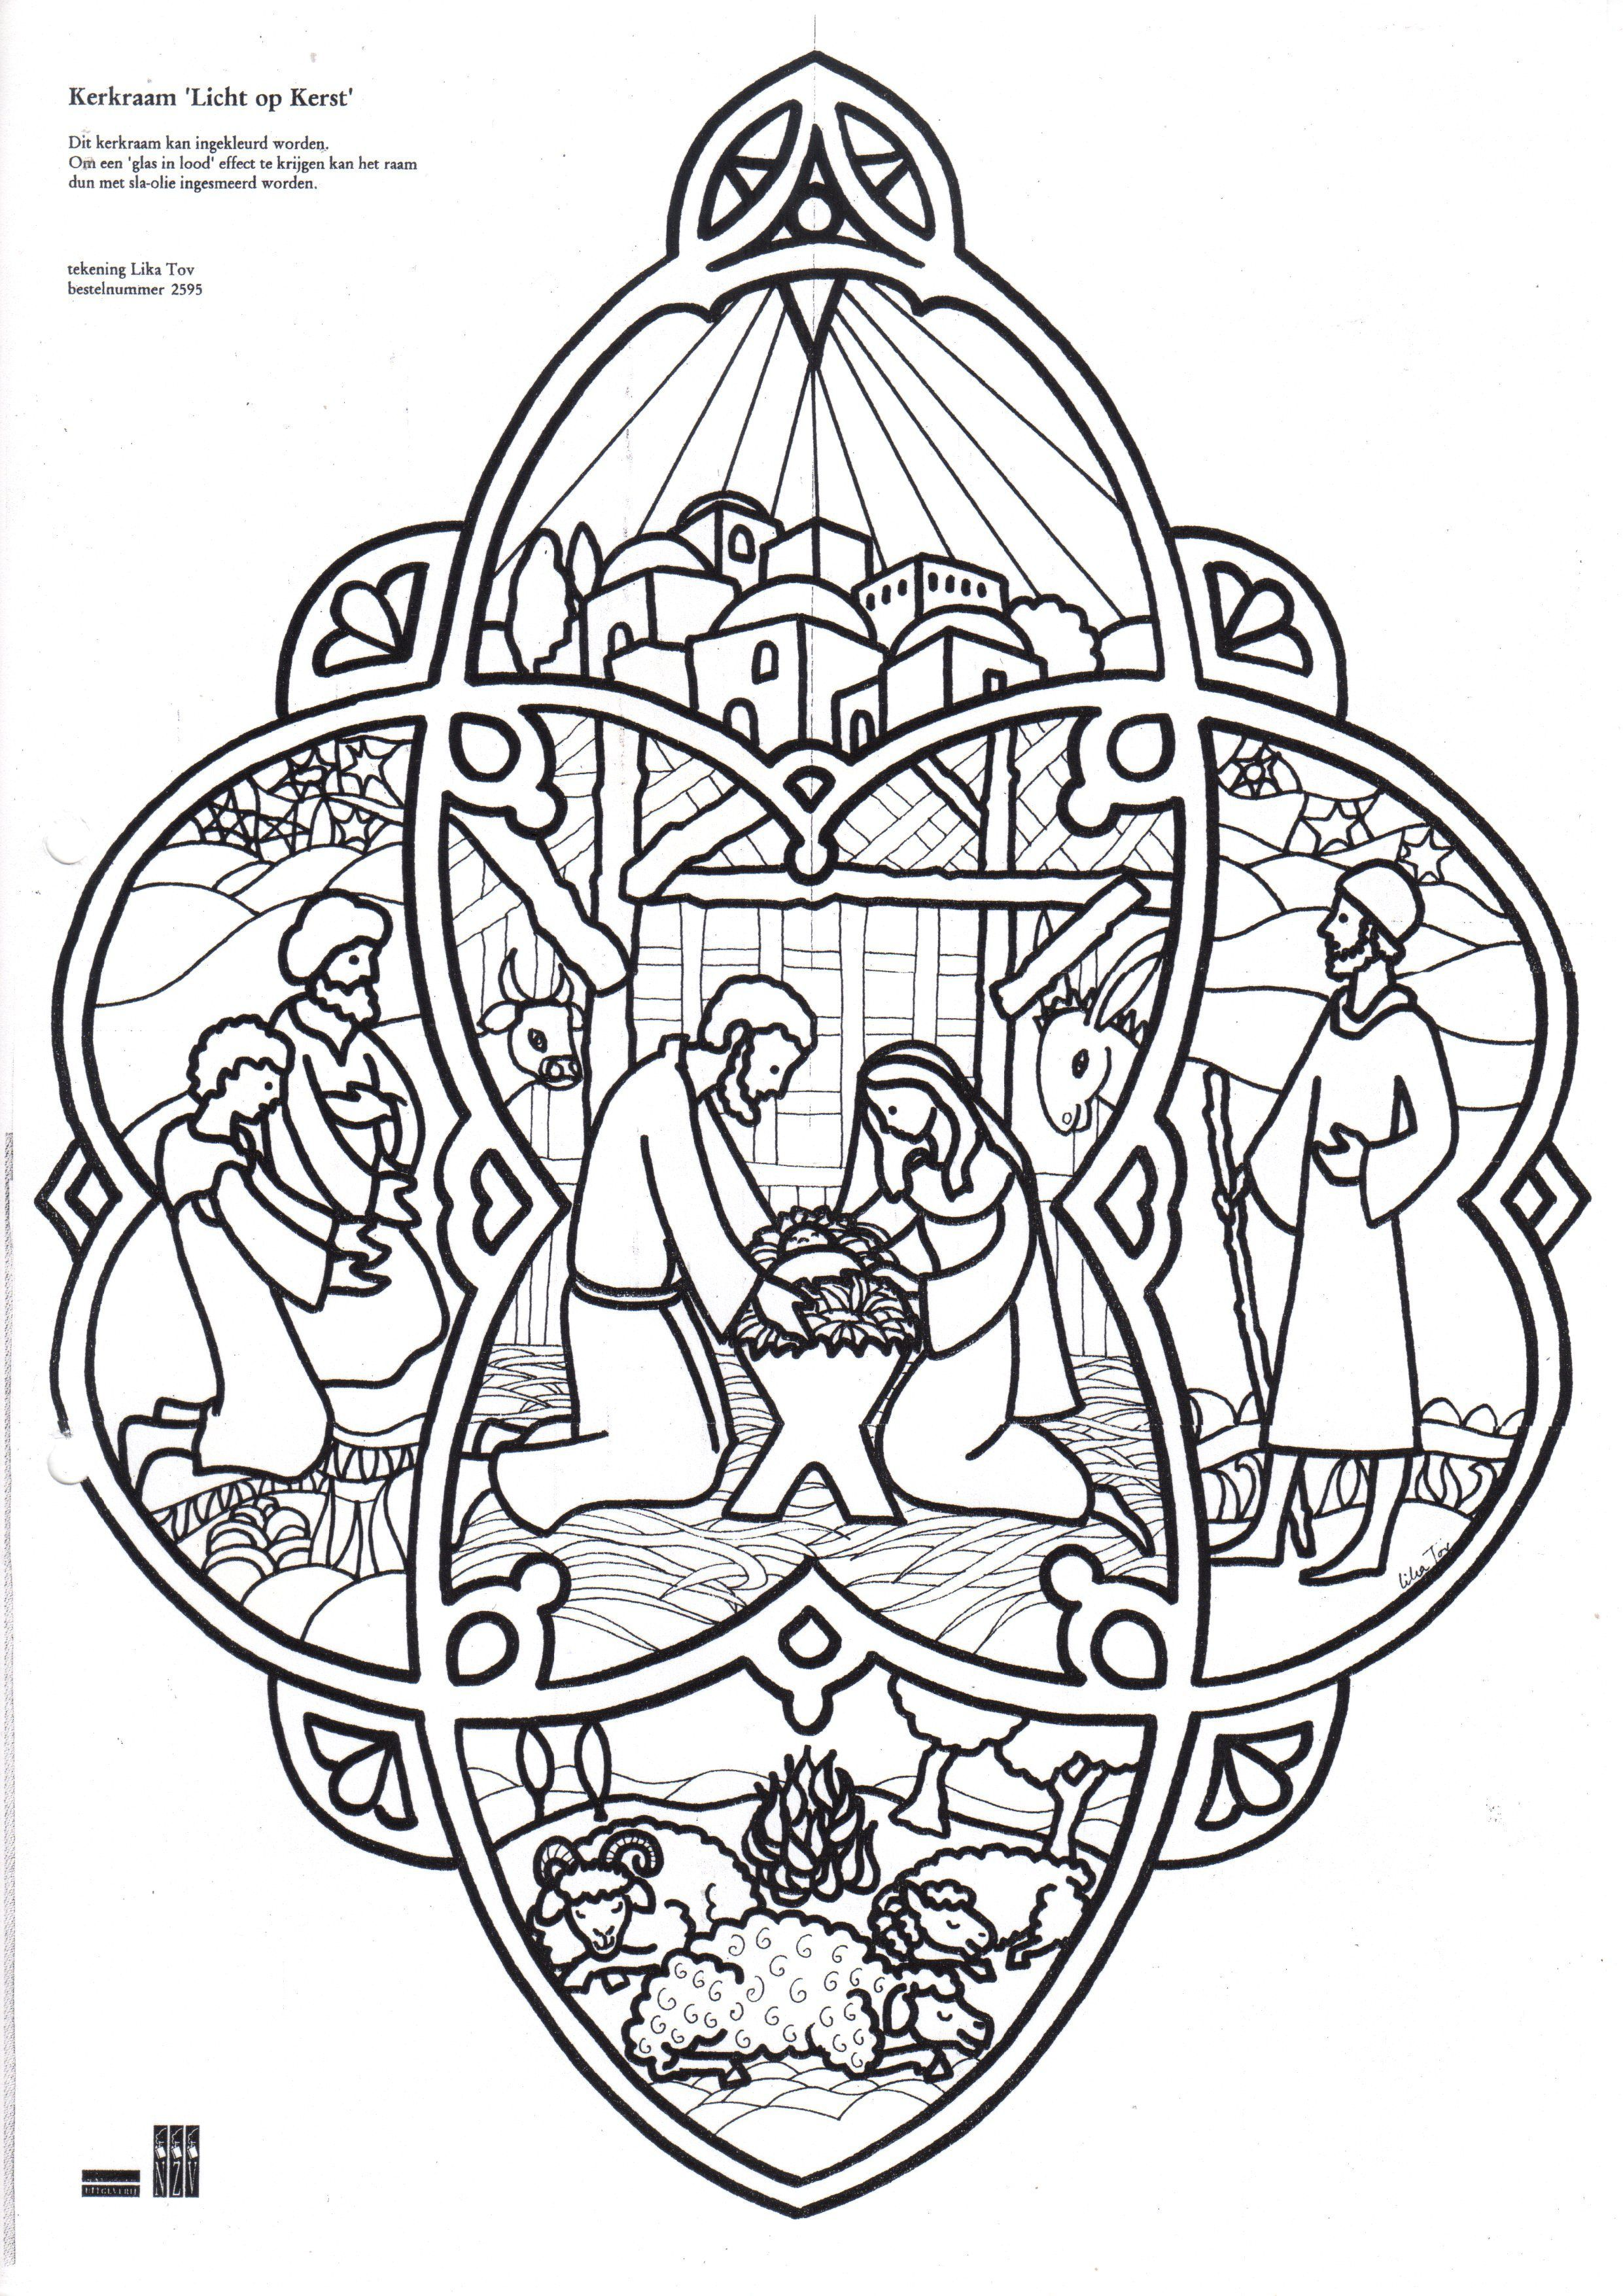 Christmas Coloring Page Nativity Nativity Jewelry Pinterest Christmas Colors Sunday Nativity Coloring Pages Nativity Coloring Christmas Coloring Pages